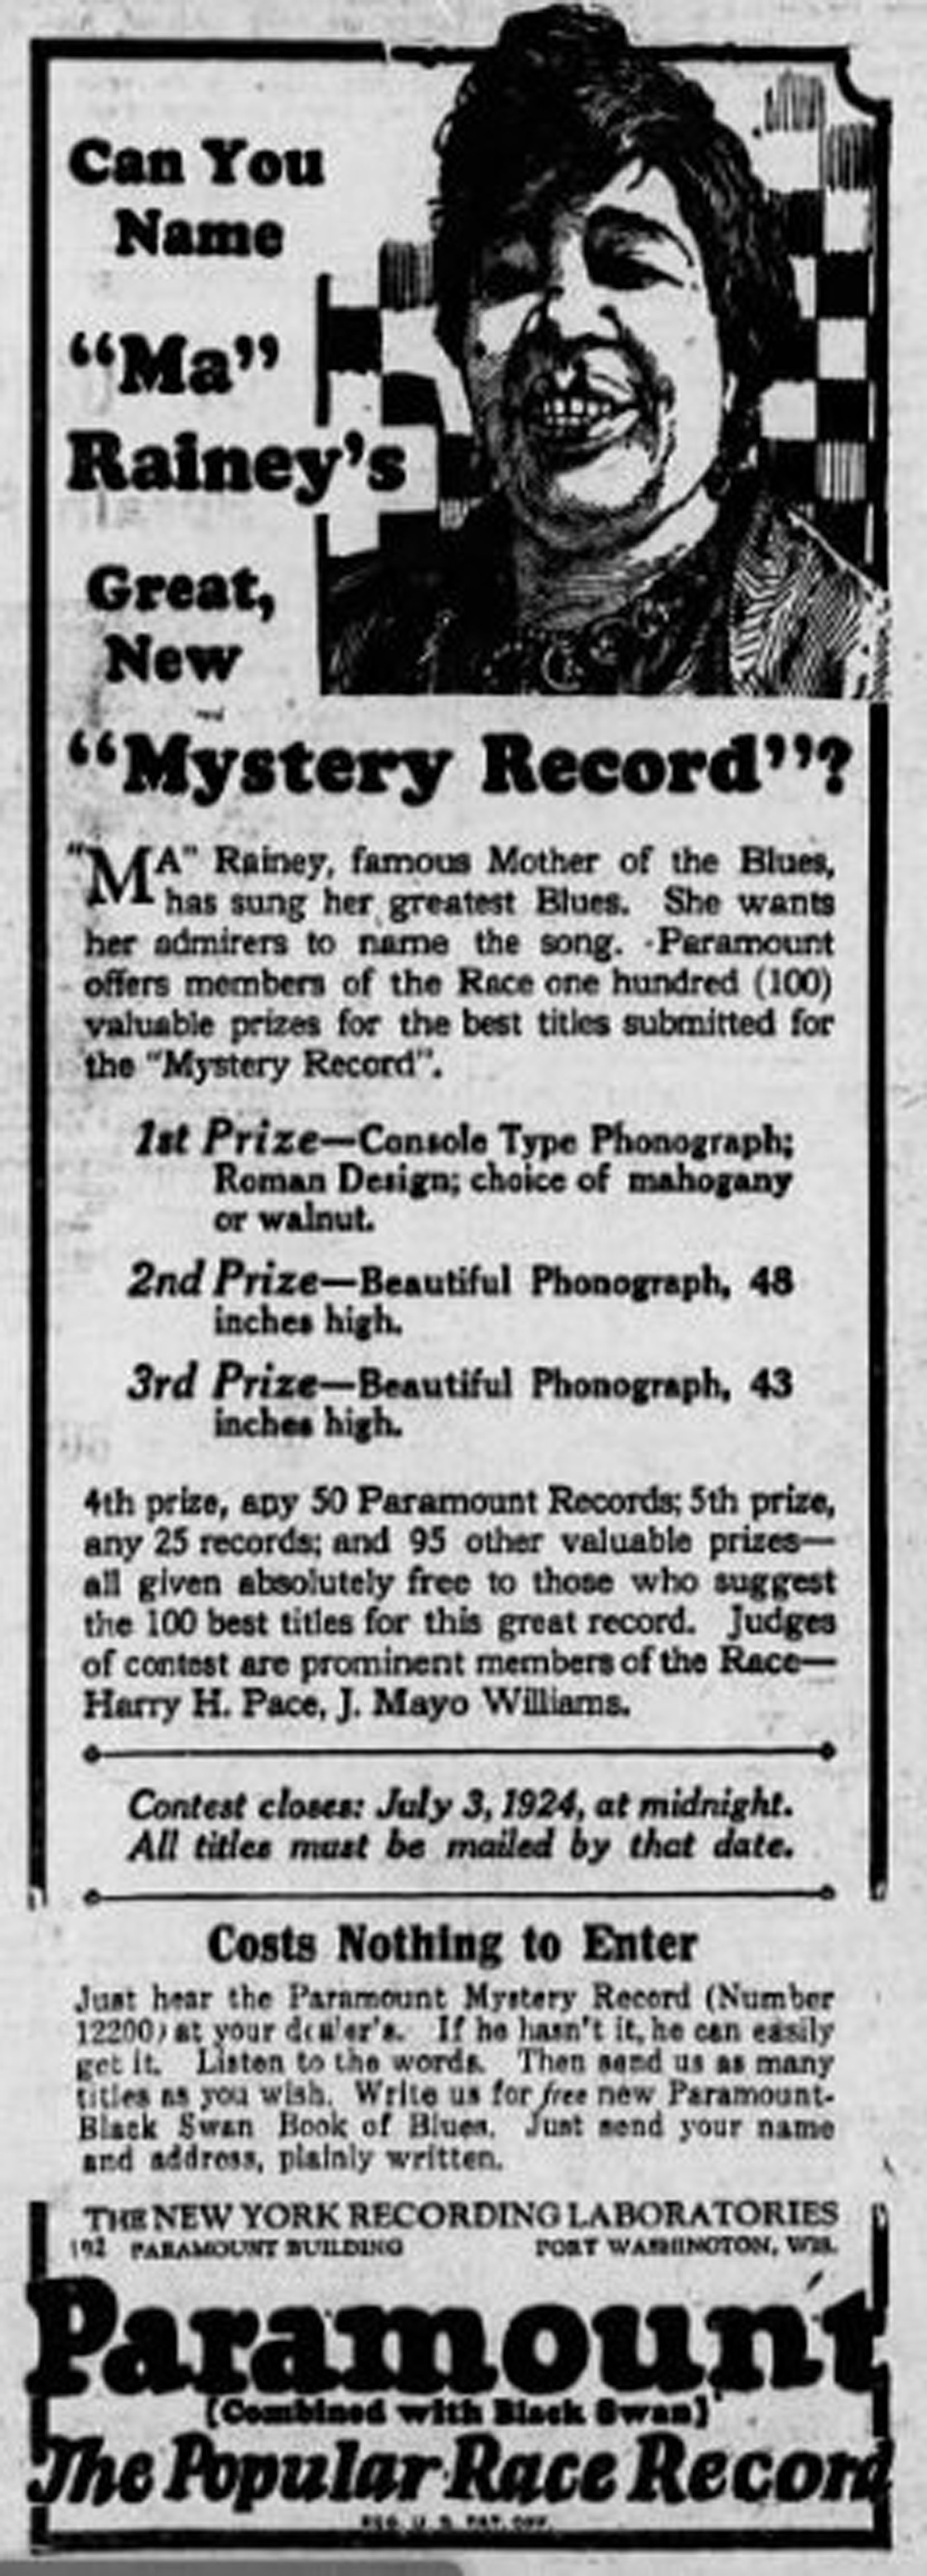 A 1924 advertisement for Ma Rainey recordings in the New York Age. (Courtesy of Mt. Zion Memorial Fund)